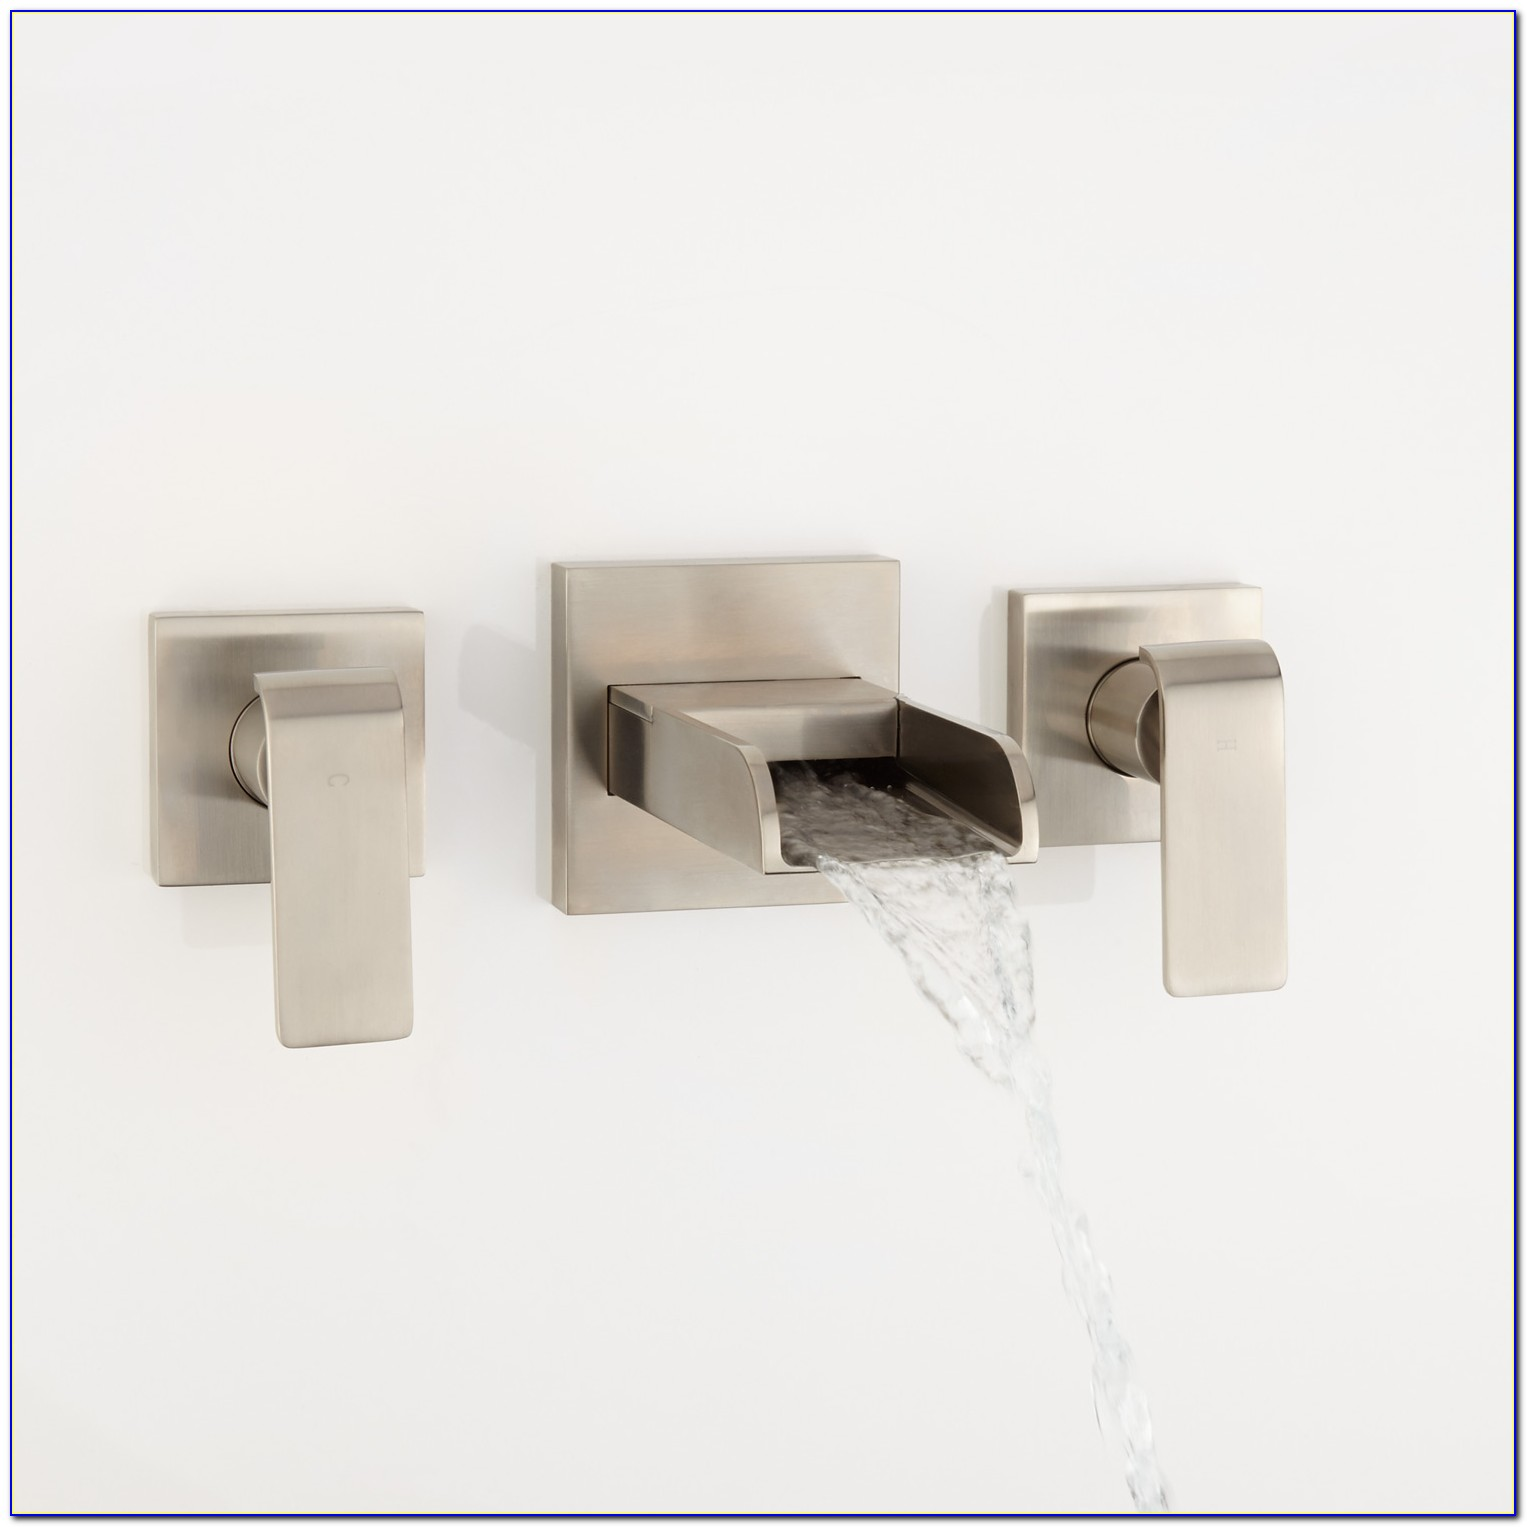 Waterfall Wall Mount Sink Faucet